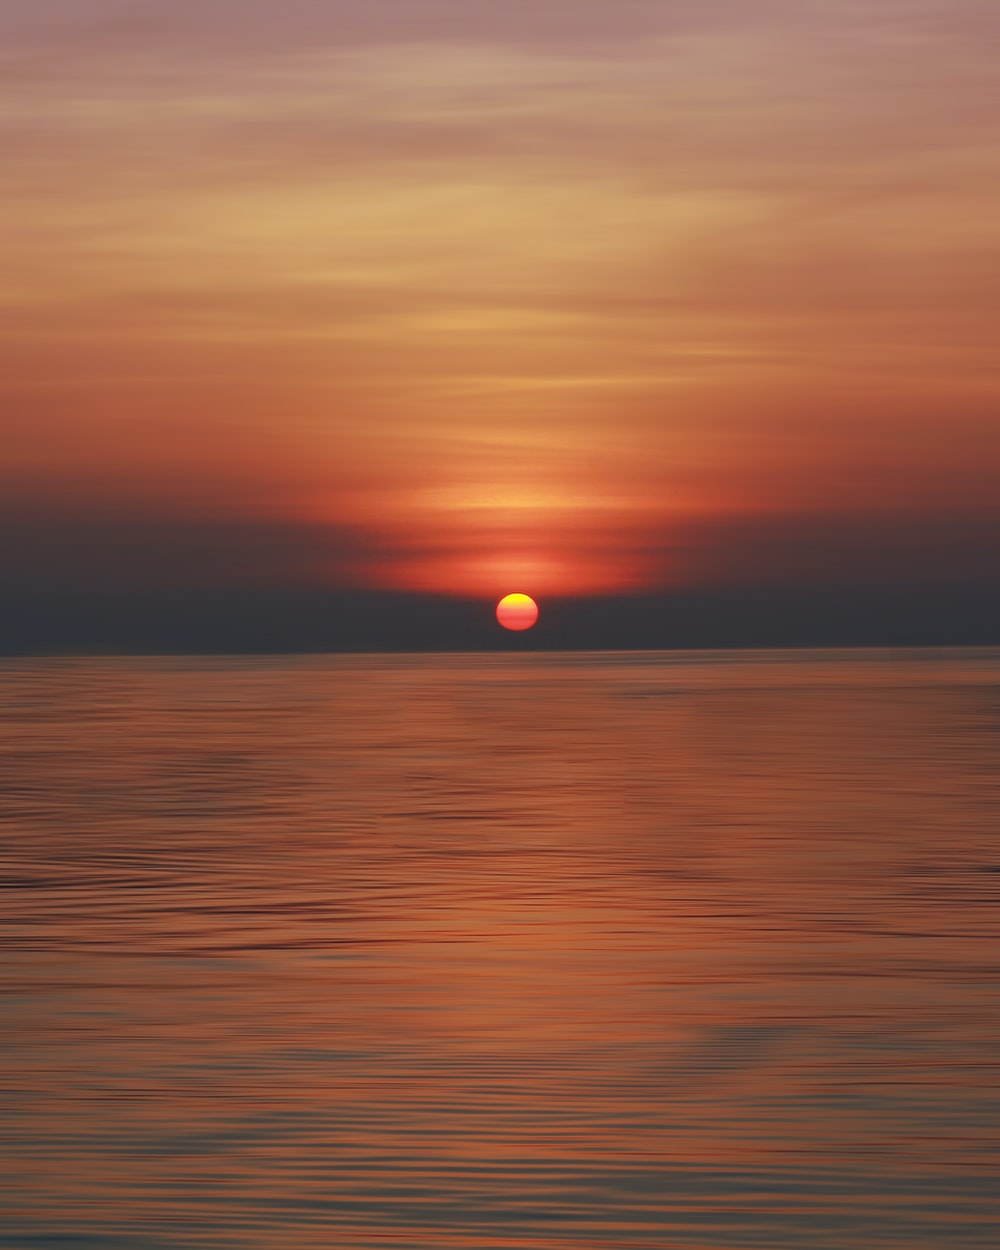 calm sea during sunset